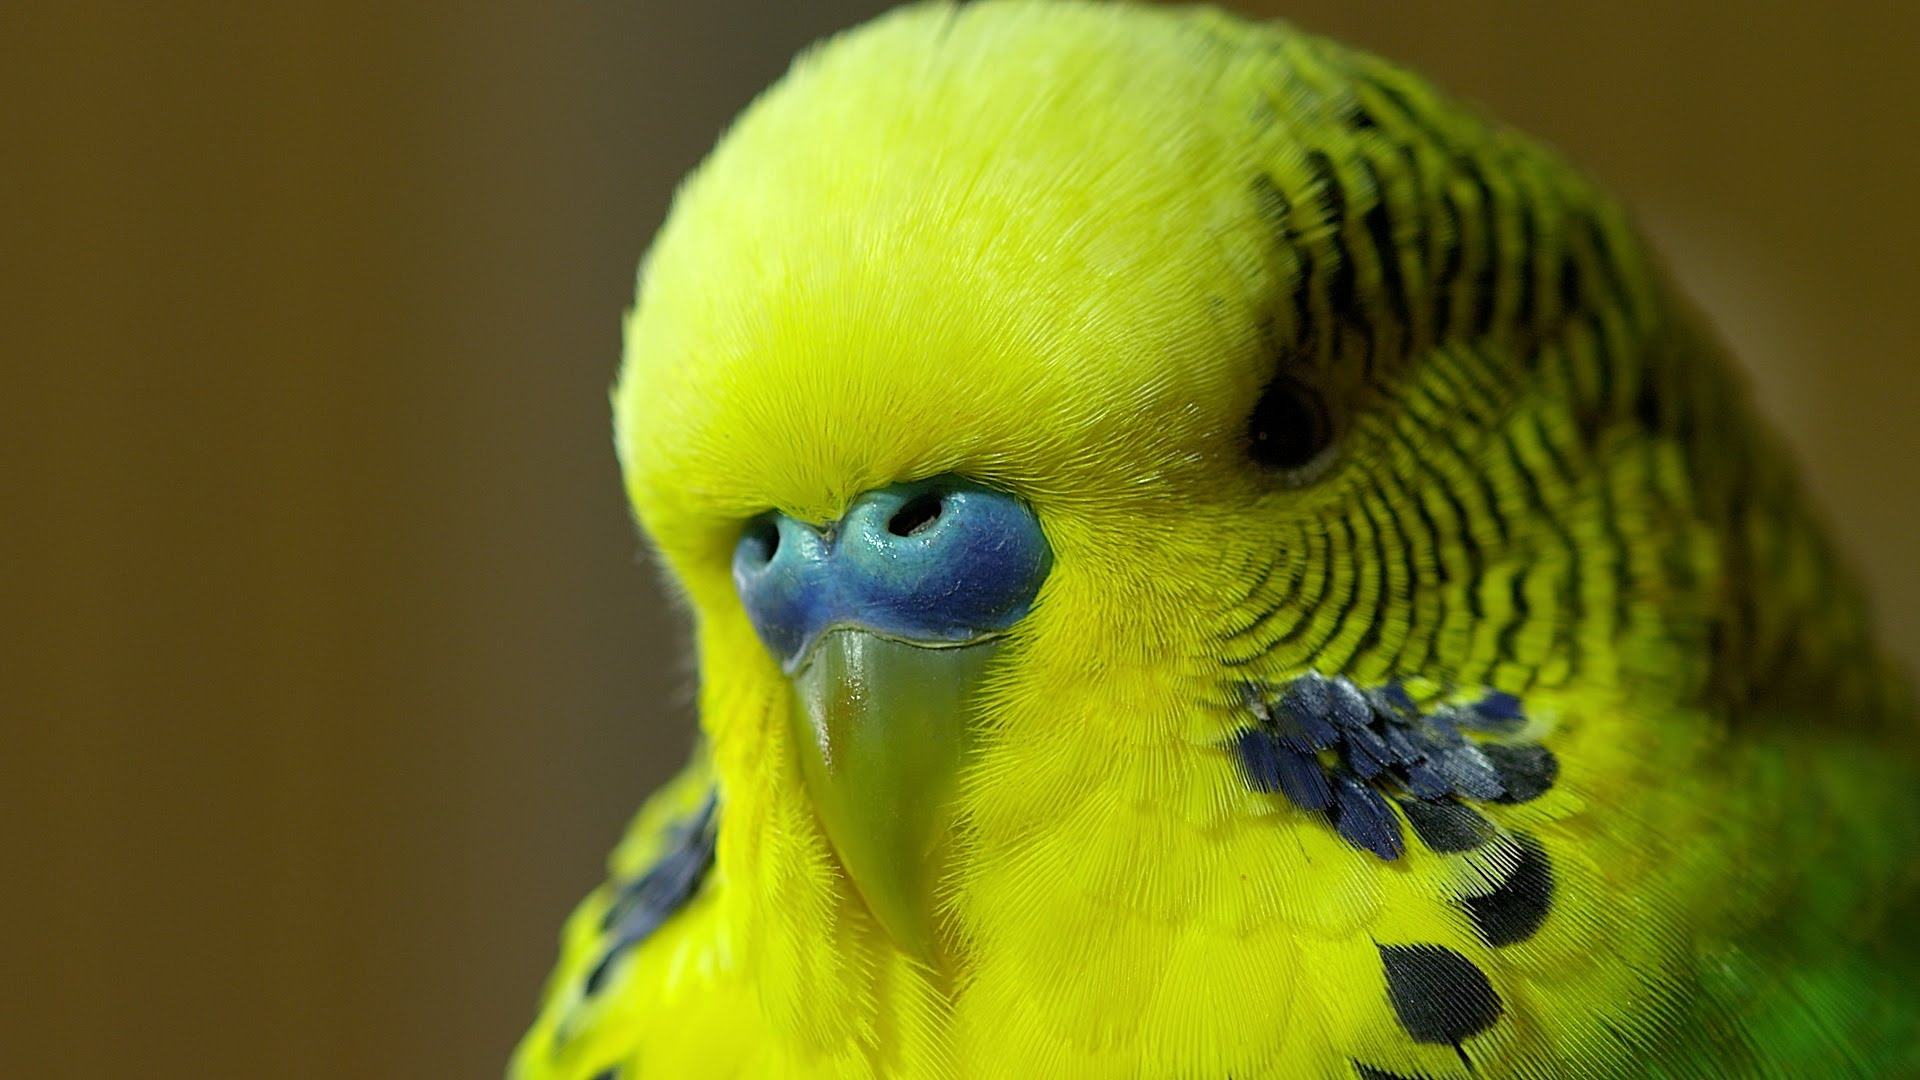 Cute Parakeet Wallpaper Budgie Wallpapers High Quality Download Free